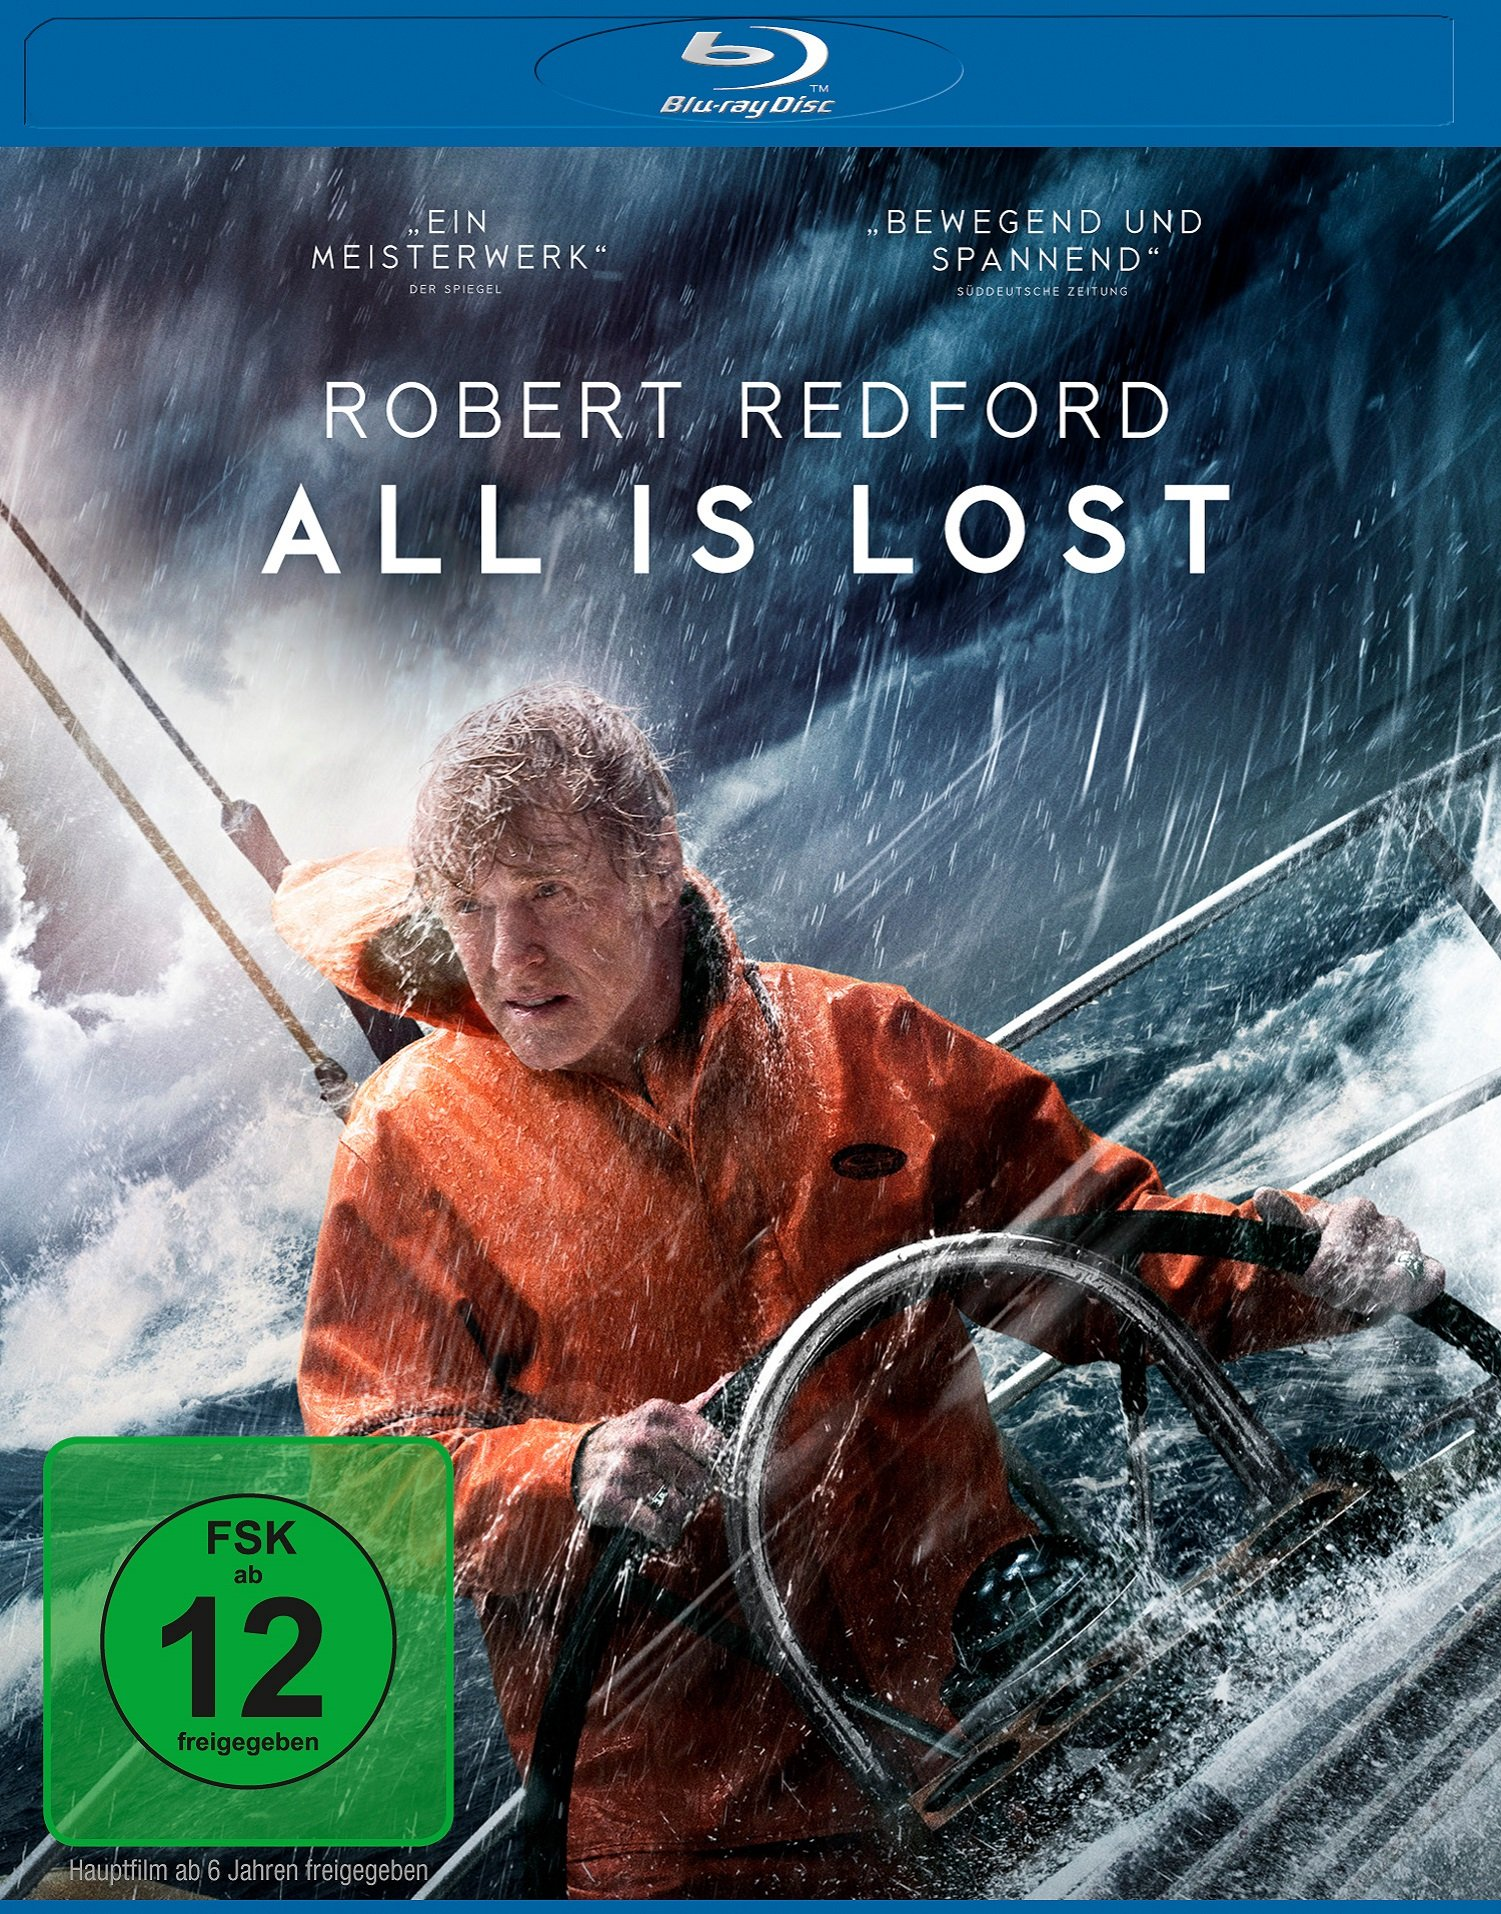 download All.Is.Lost.2013.German.DTS.DL.1080p.BluRay.x265-UNFIrED